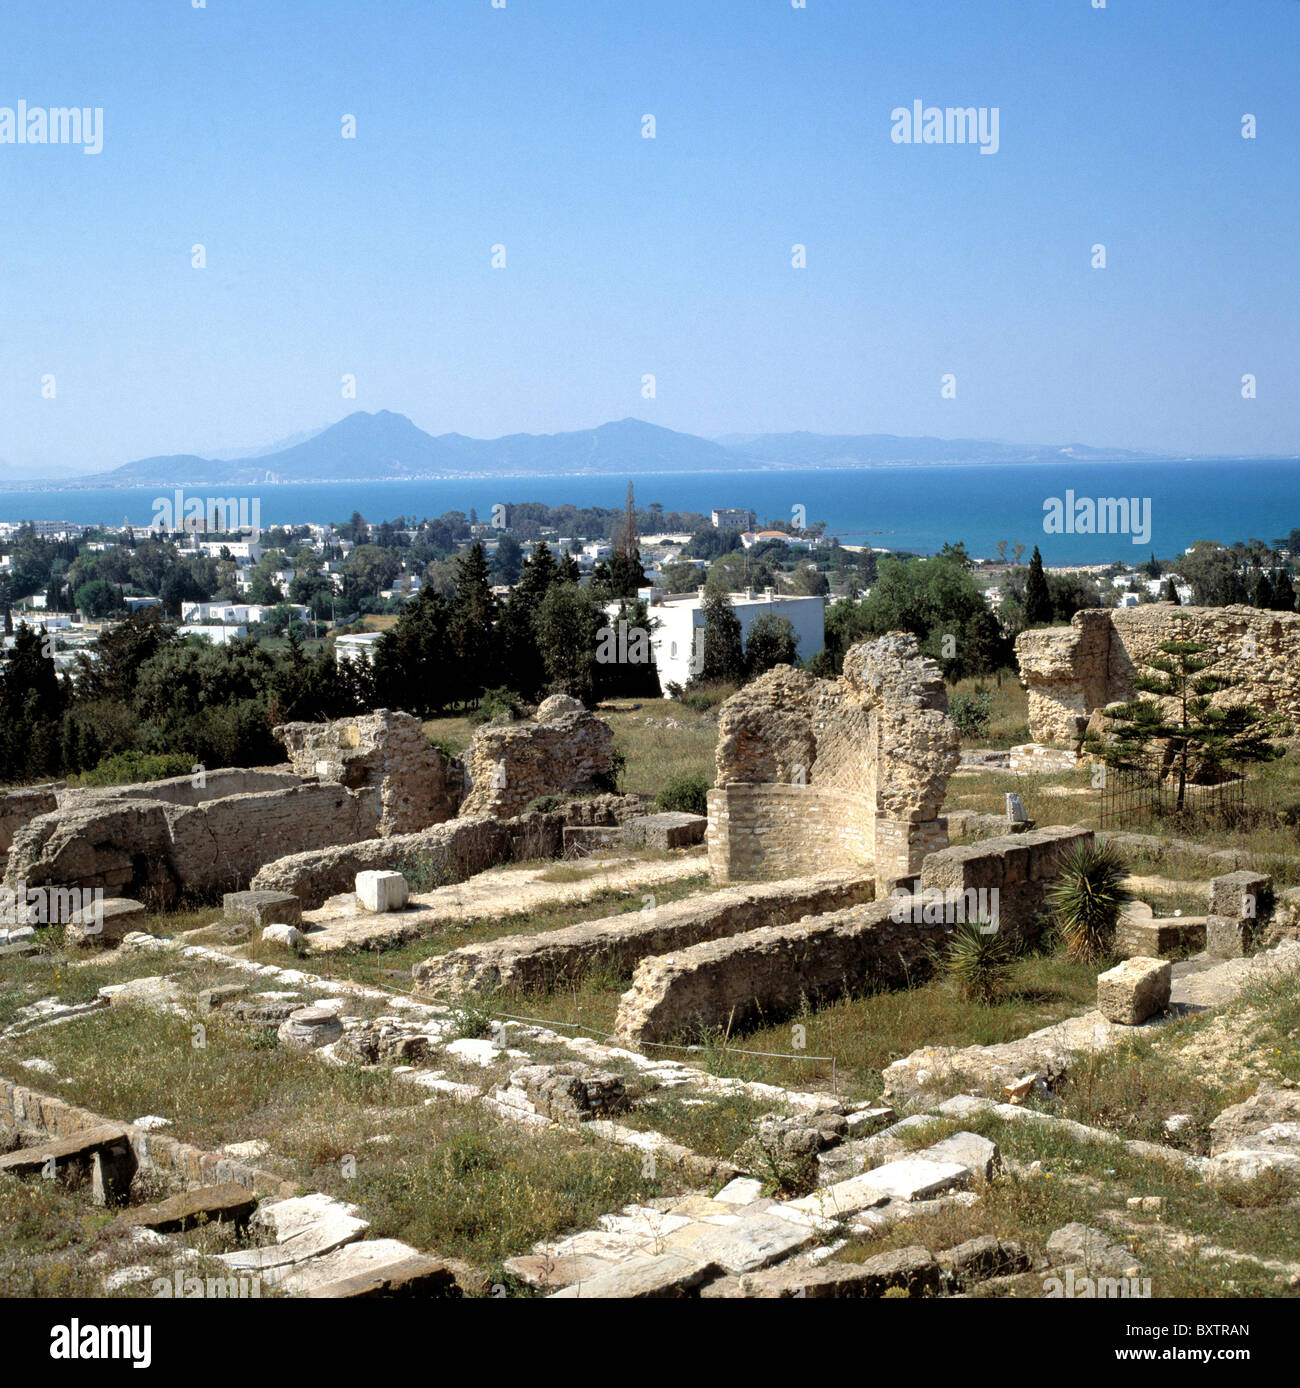 Overview of ruins of Carthage, Tunisia, with Mediterranean in background Stock Photo